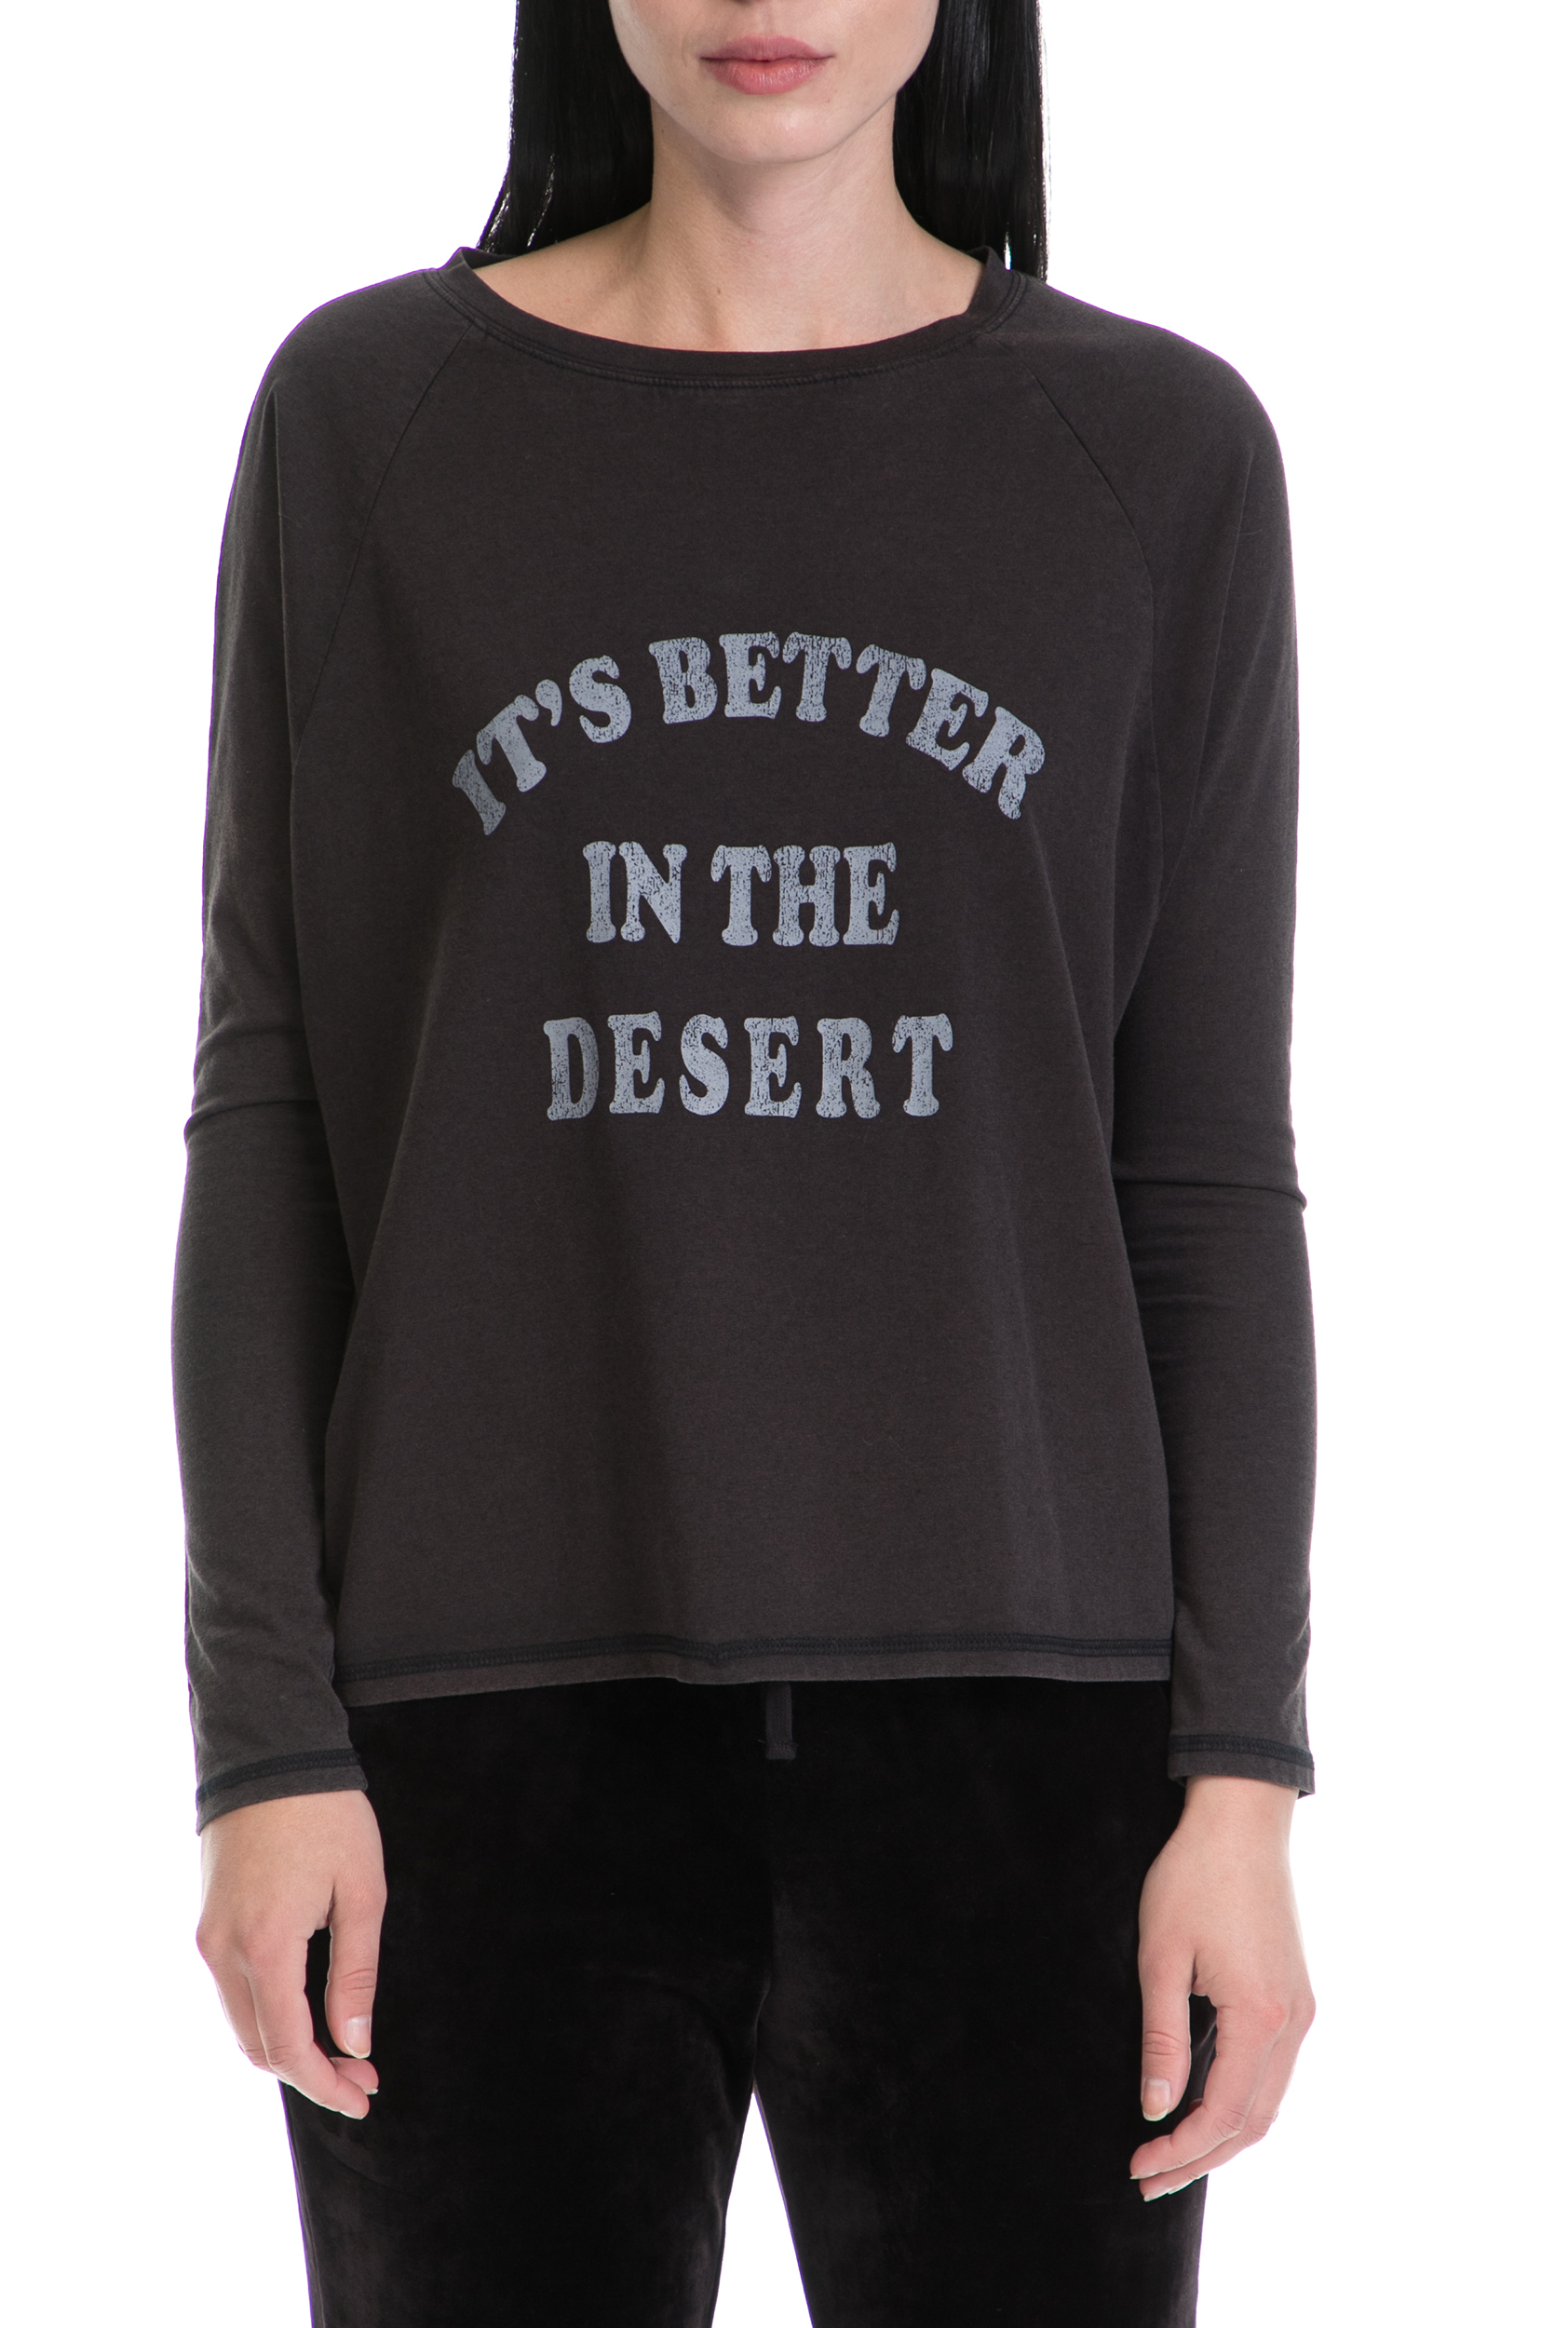 JUICY COUTURE - Γυναικεία Μπλούζα BETTER IN THE DESERT GRAPH JUICY COUTURE Γκρι